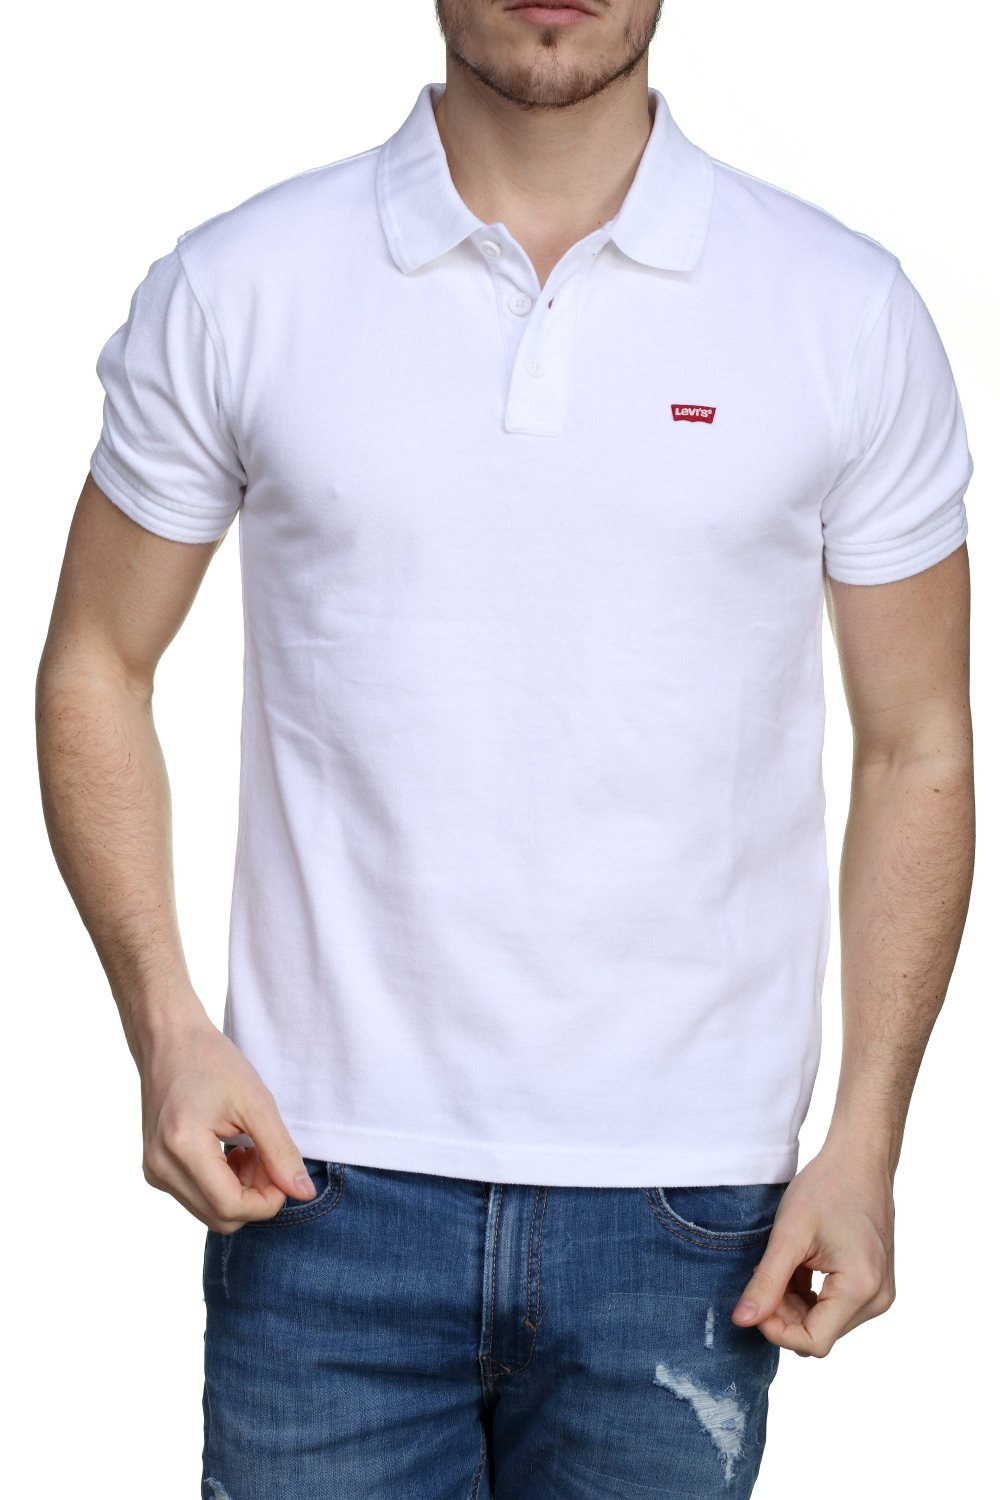 https://www.leadermode.com/144521/levis-22401-0001-white.jpg